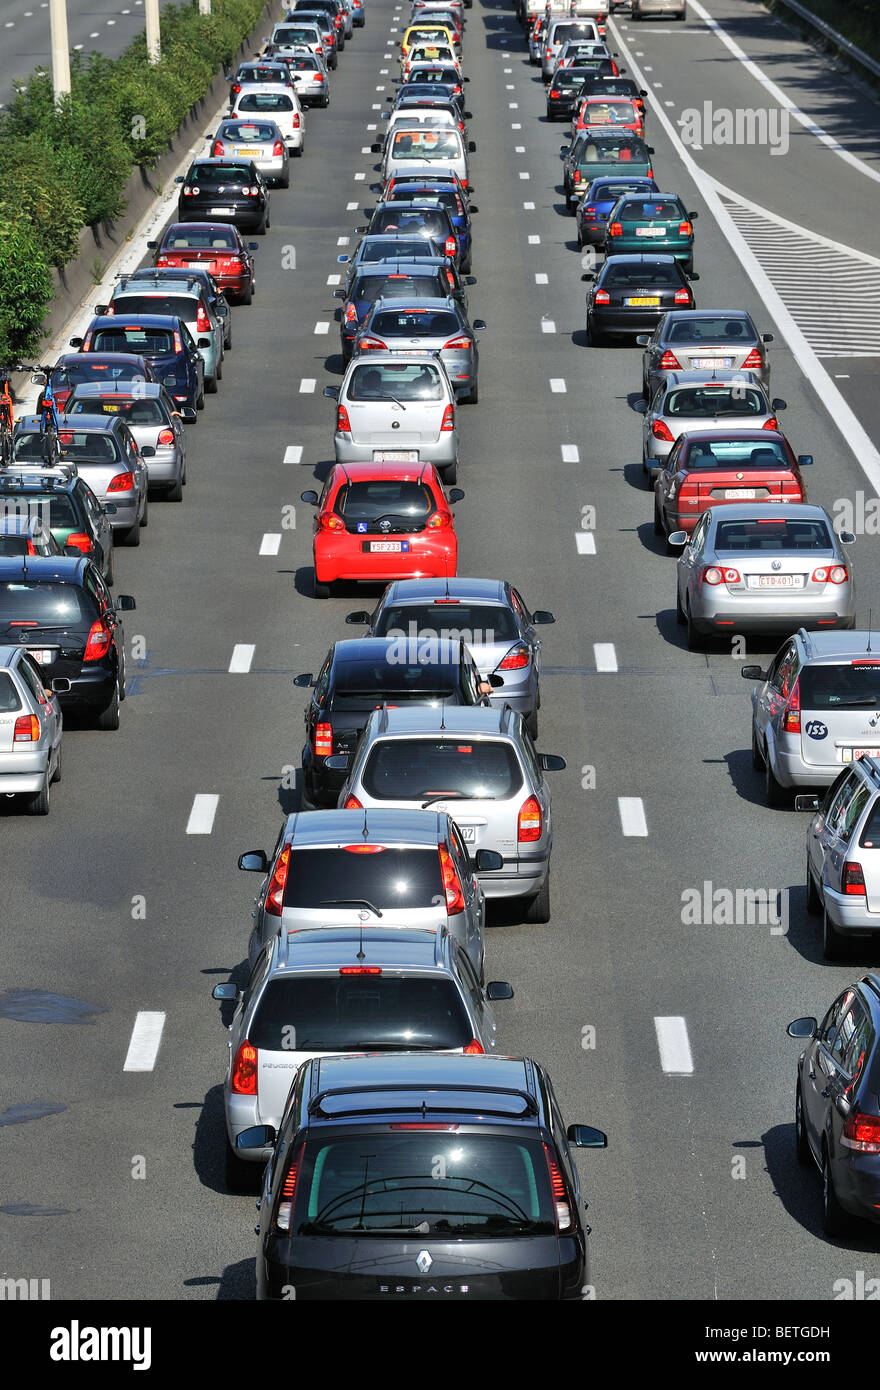 Cars queueing in highway lanes during traffic jam on motorway during summer holidays, Belgium - Stock Image